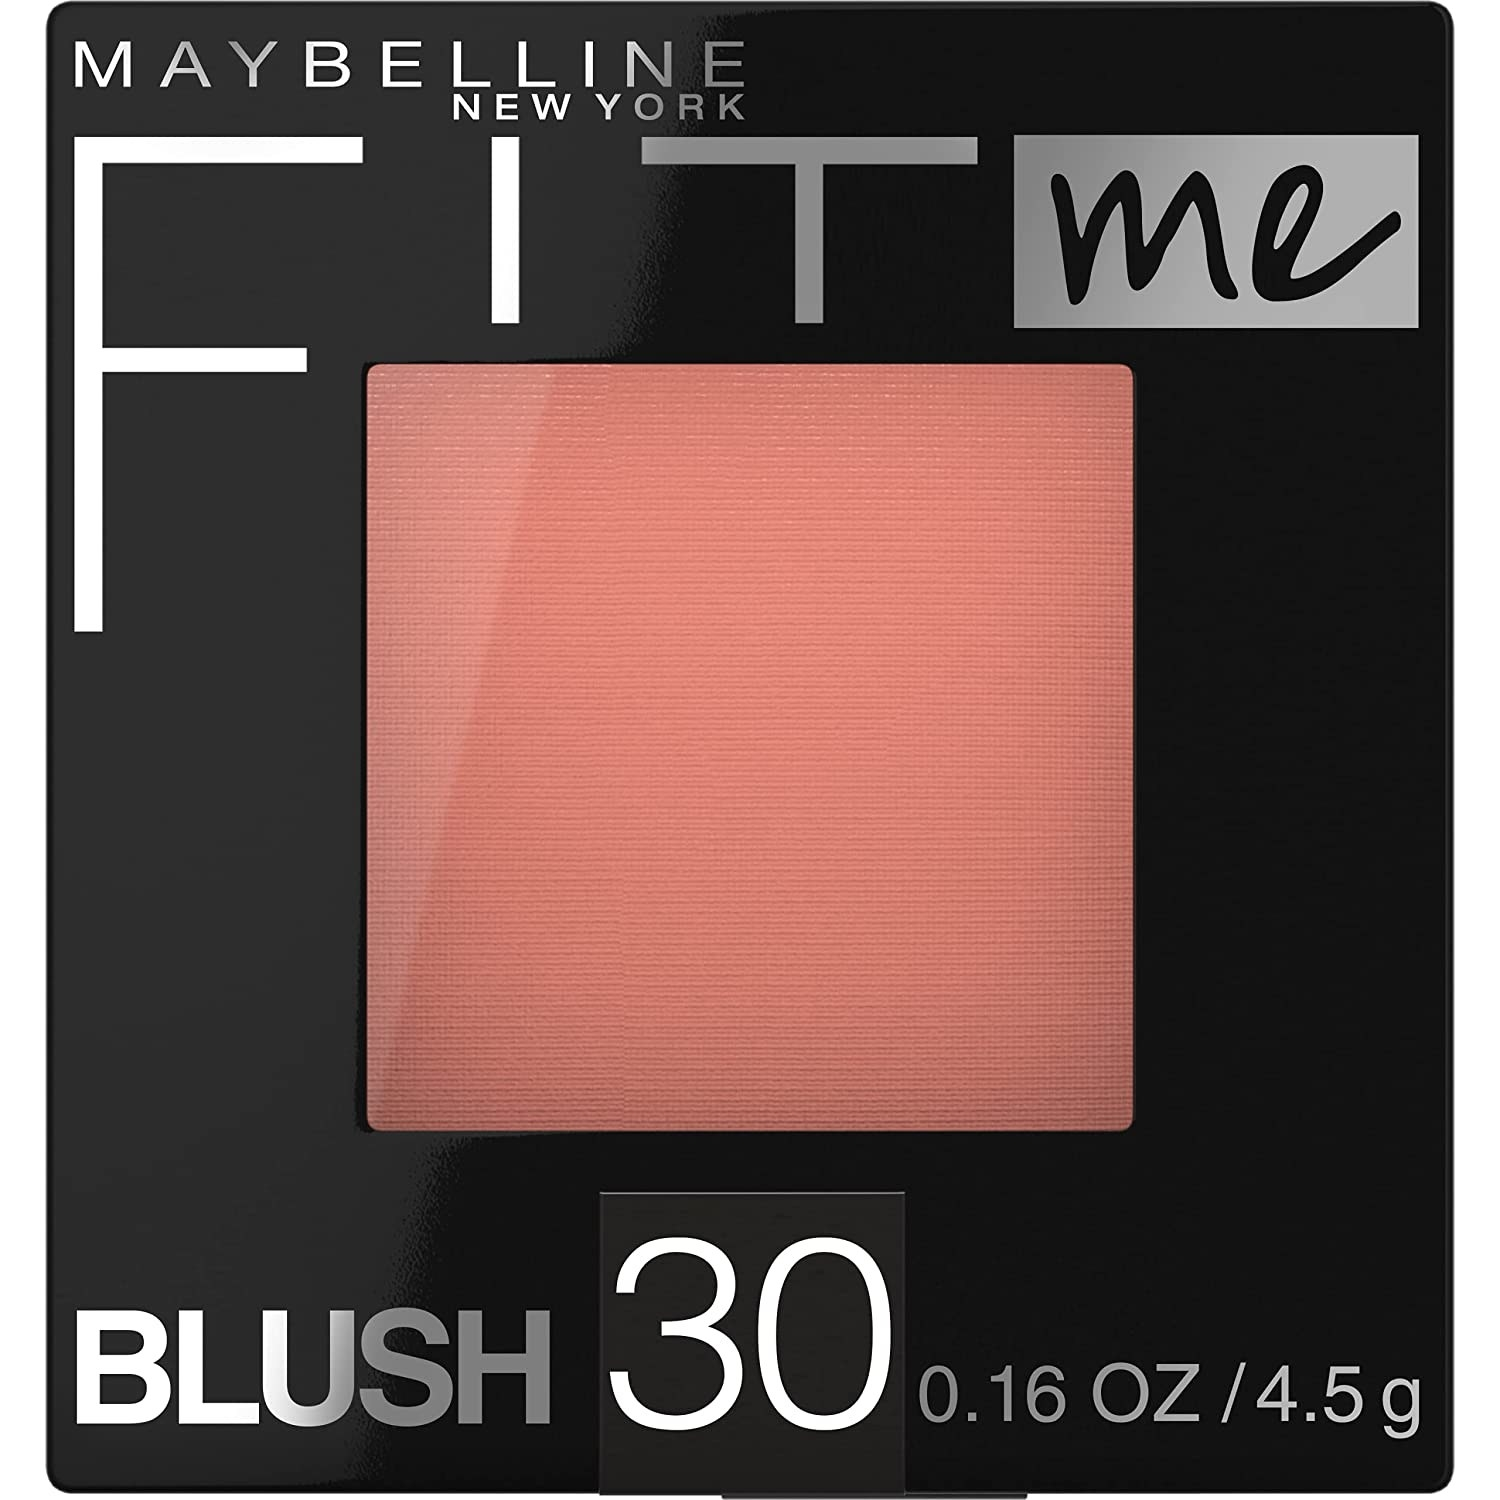 A peachy pink blush by Maybelline